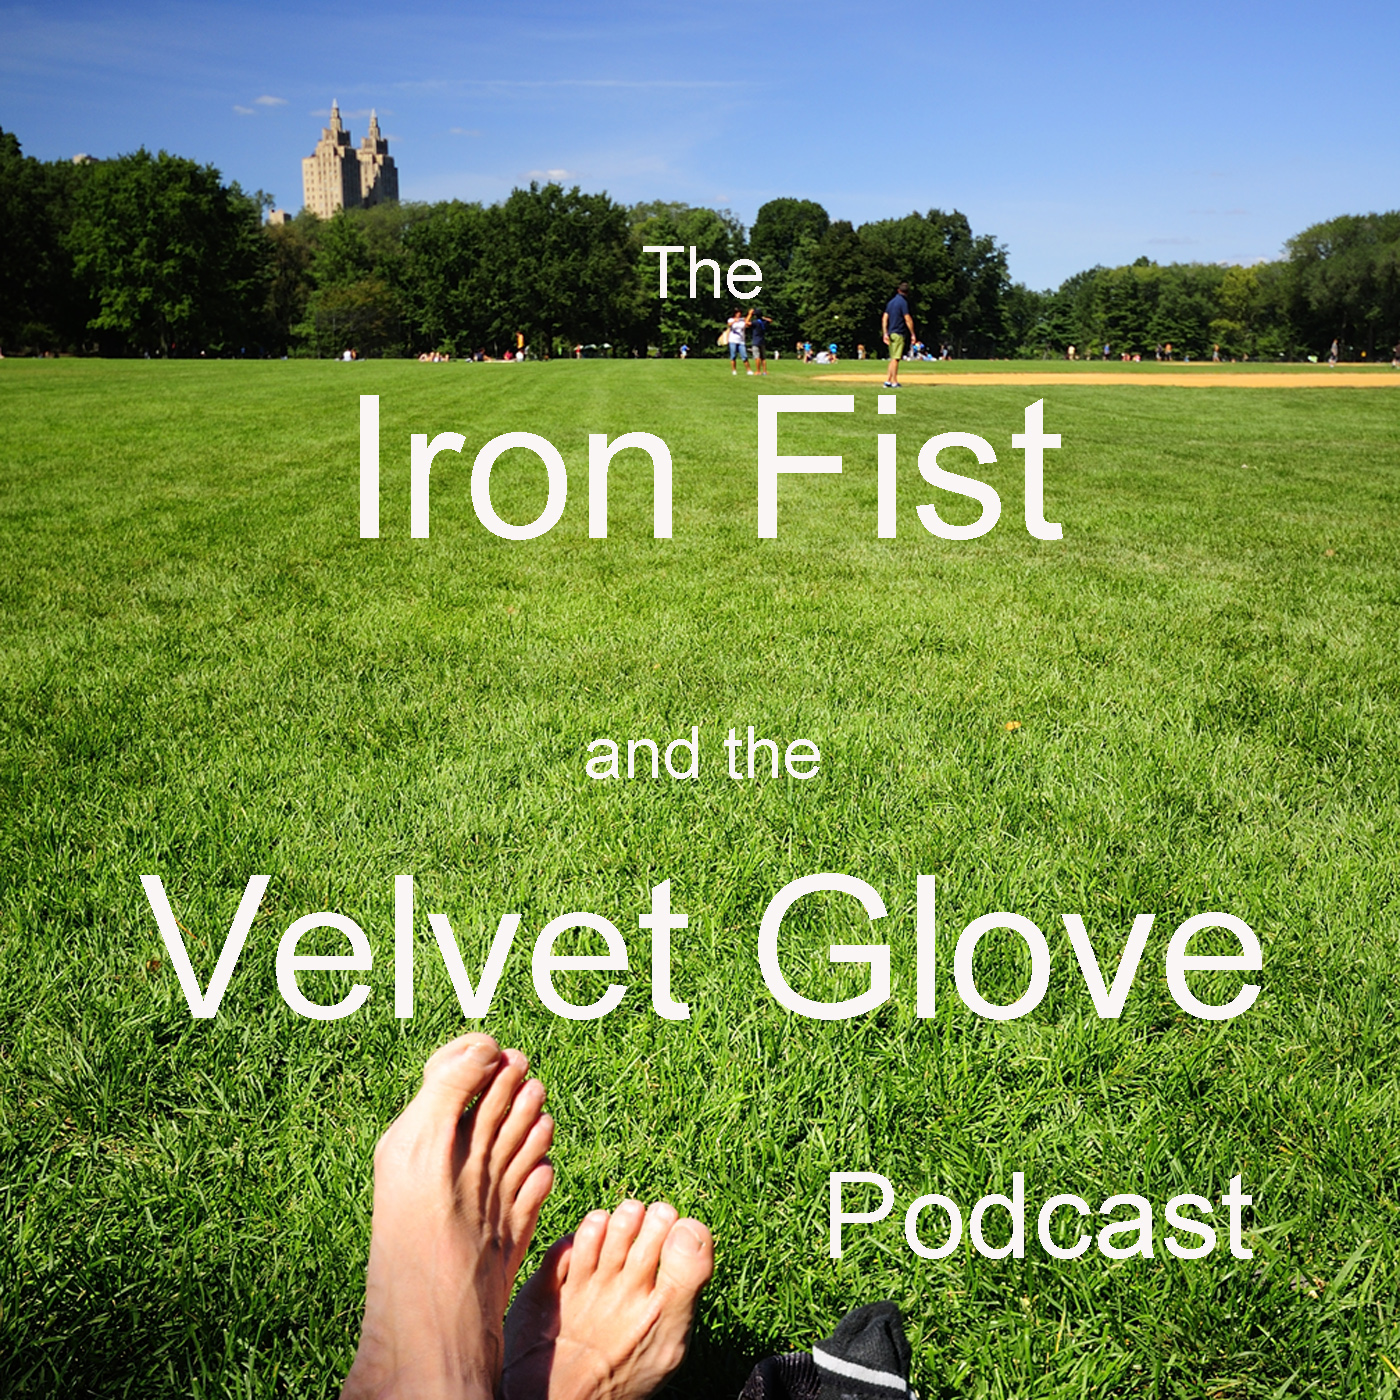 The Iron Fist and the Velvet Glove